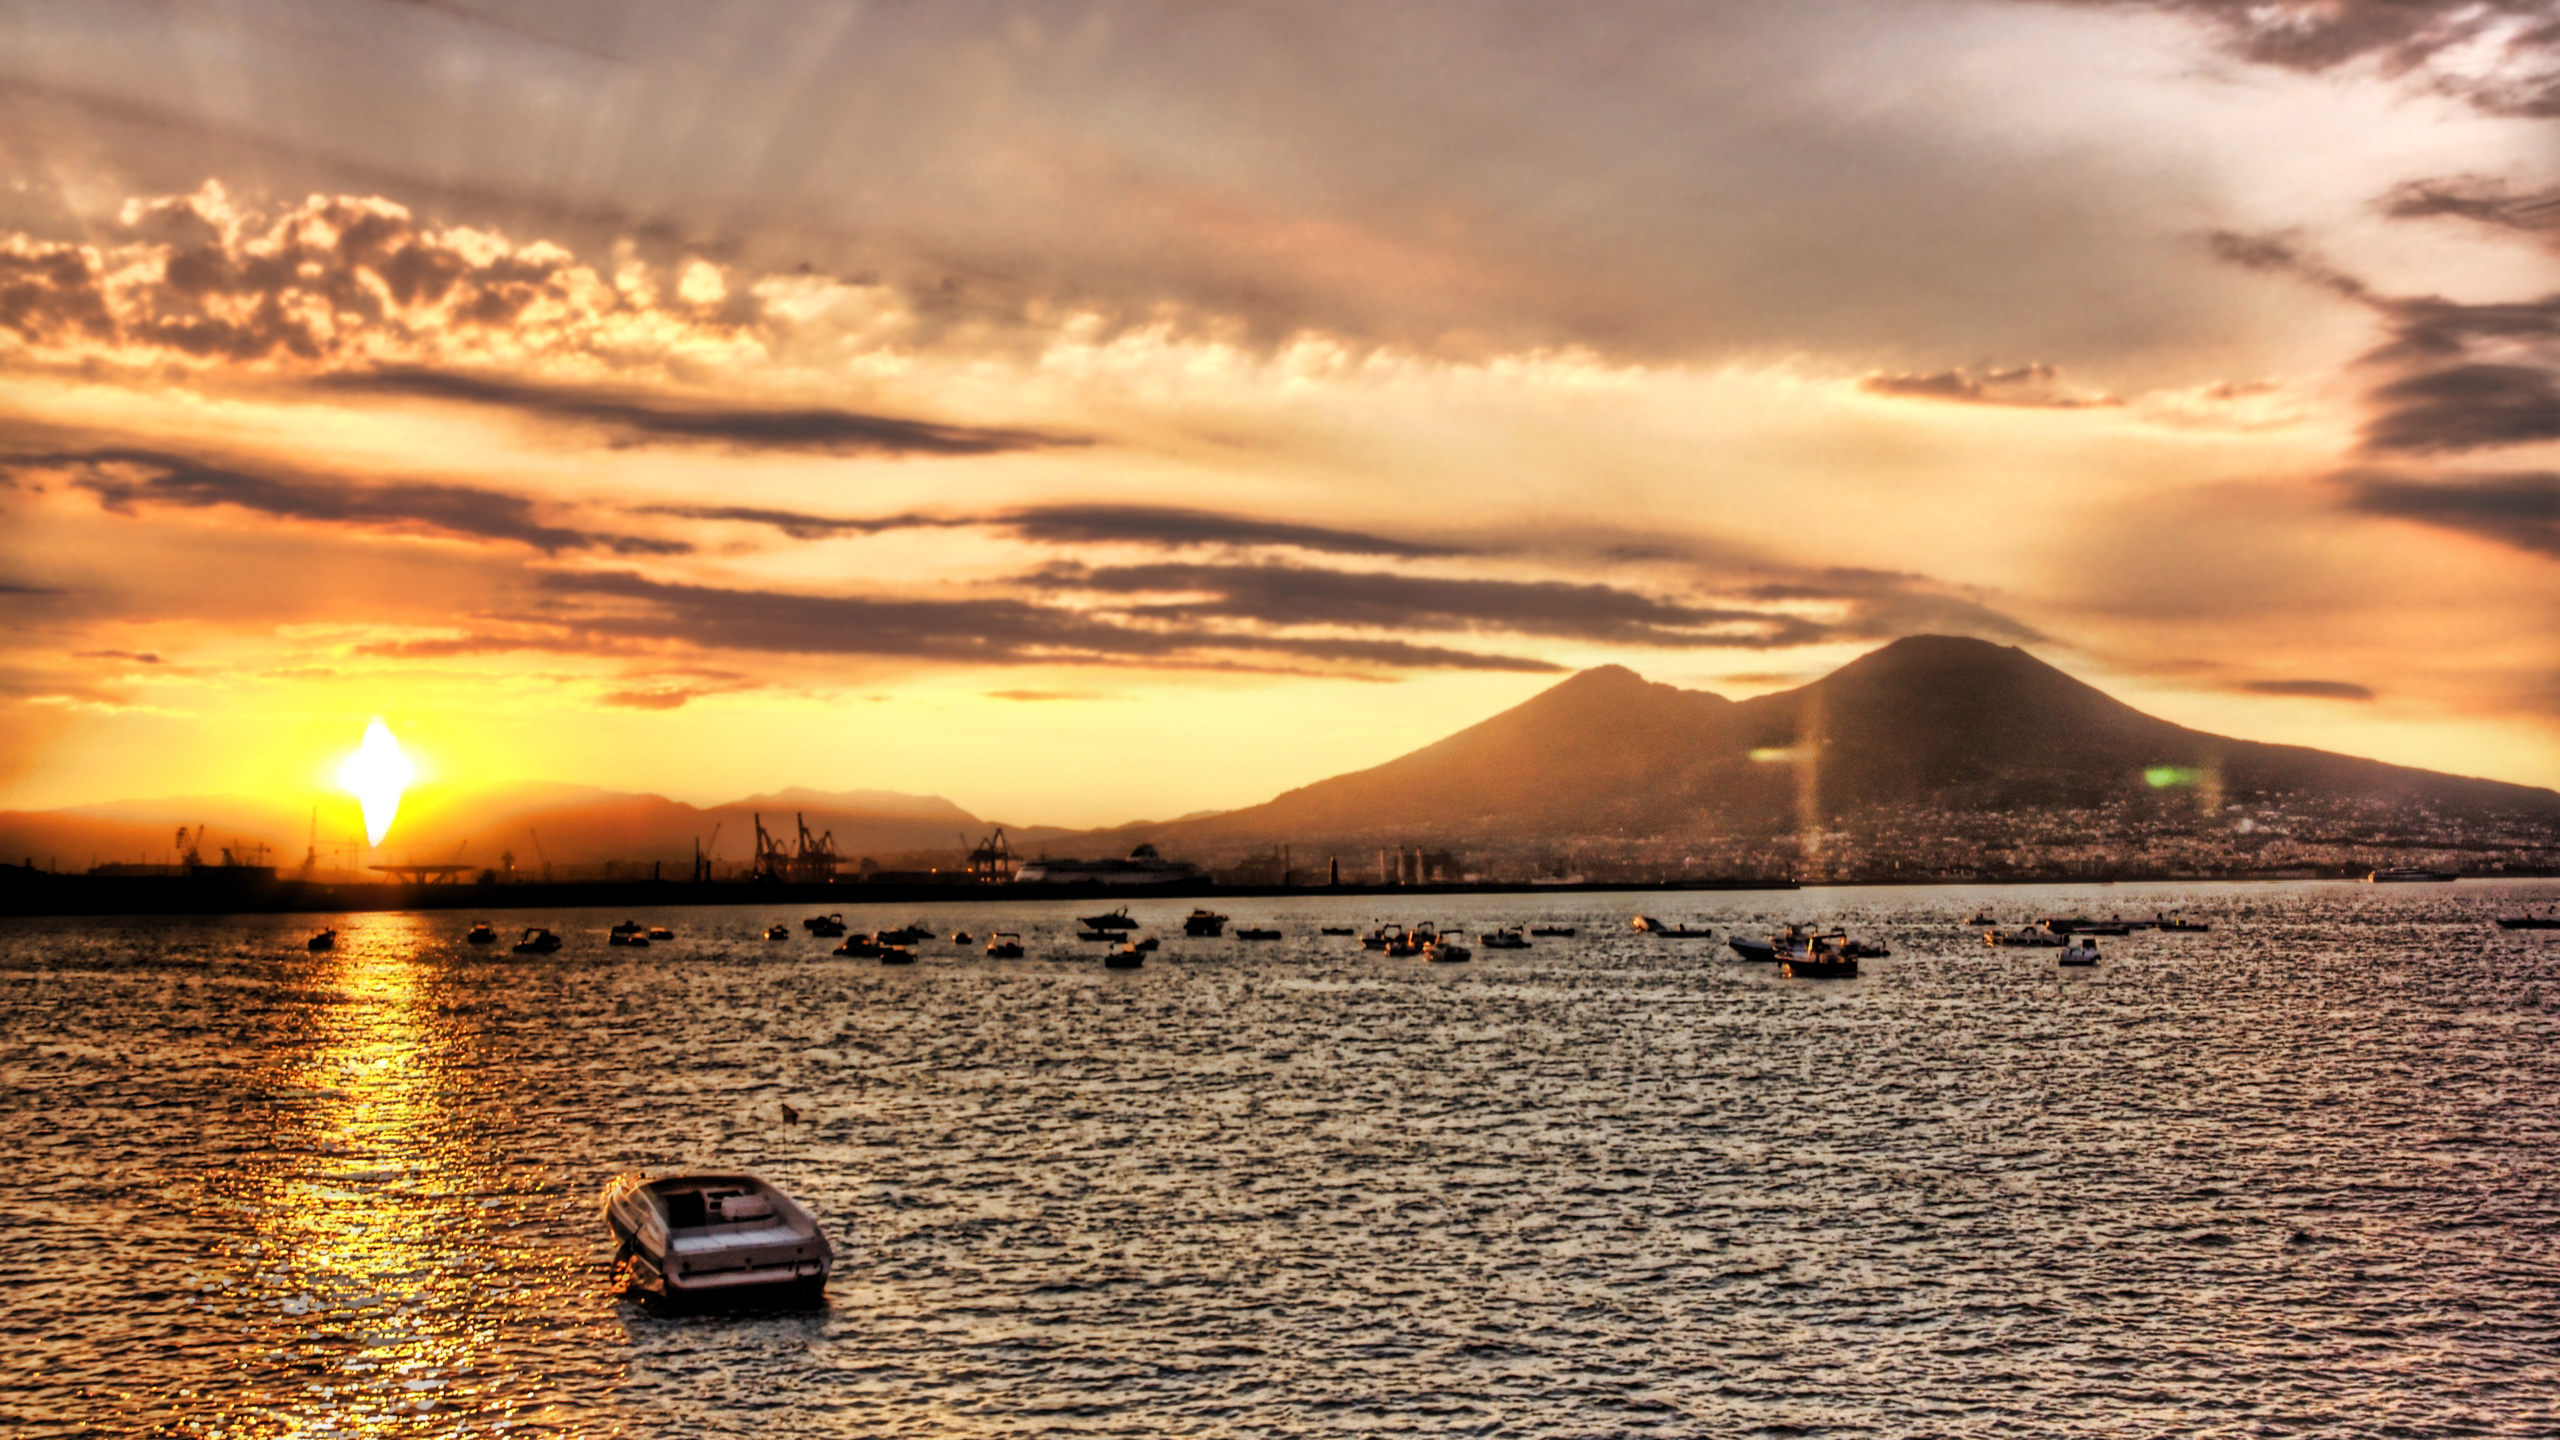 Best 43 Vesuvius Wallpaper on HipWallpaper Vesuvius Wallpaper 2560x1440